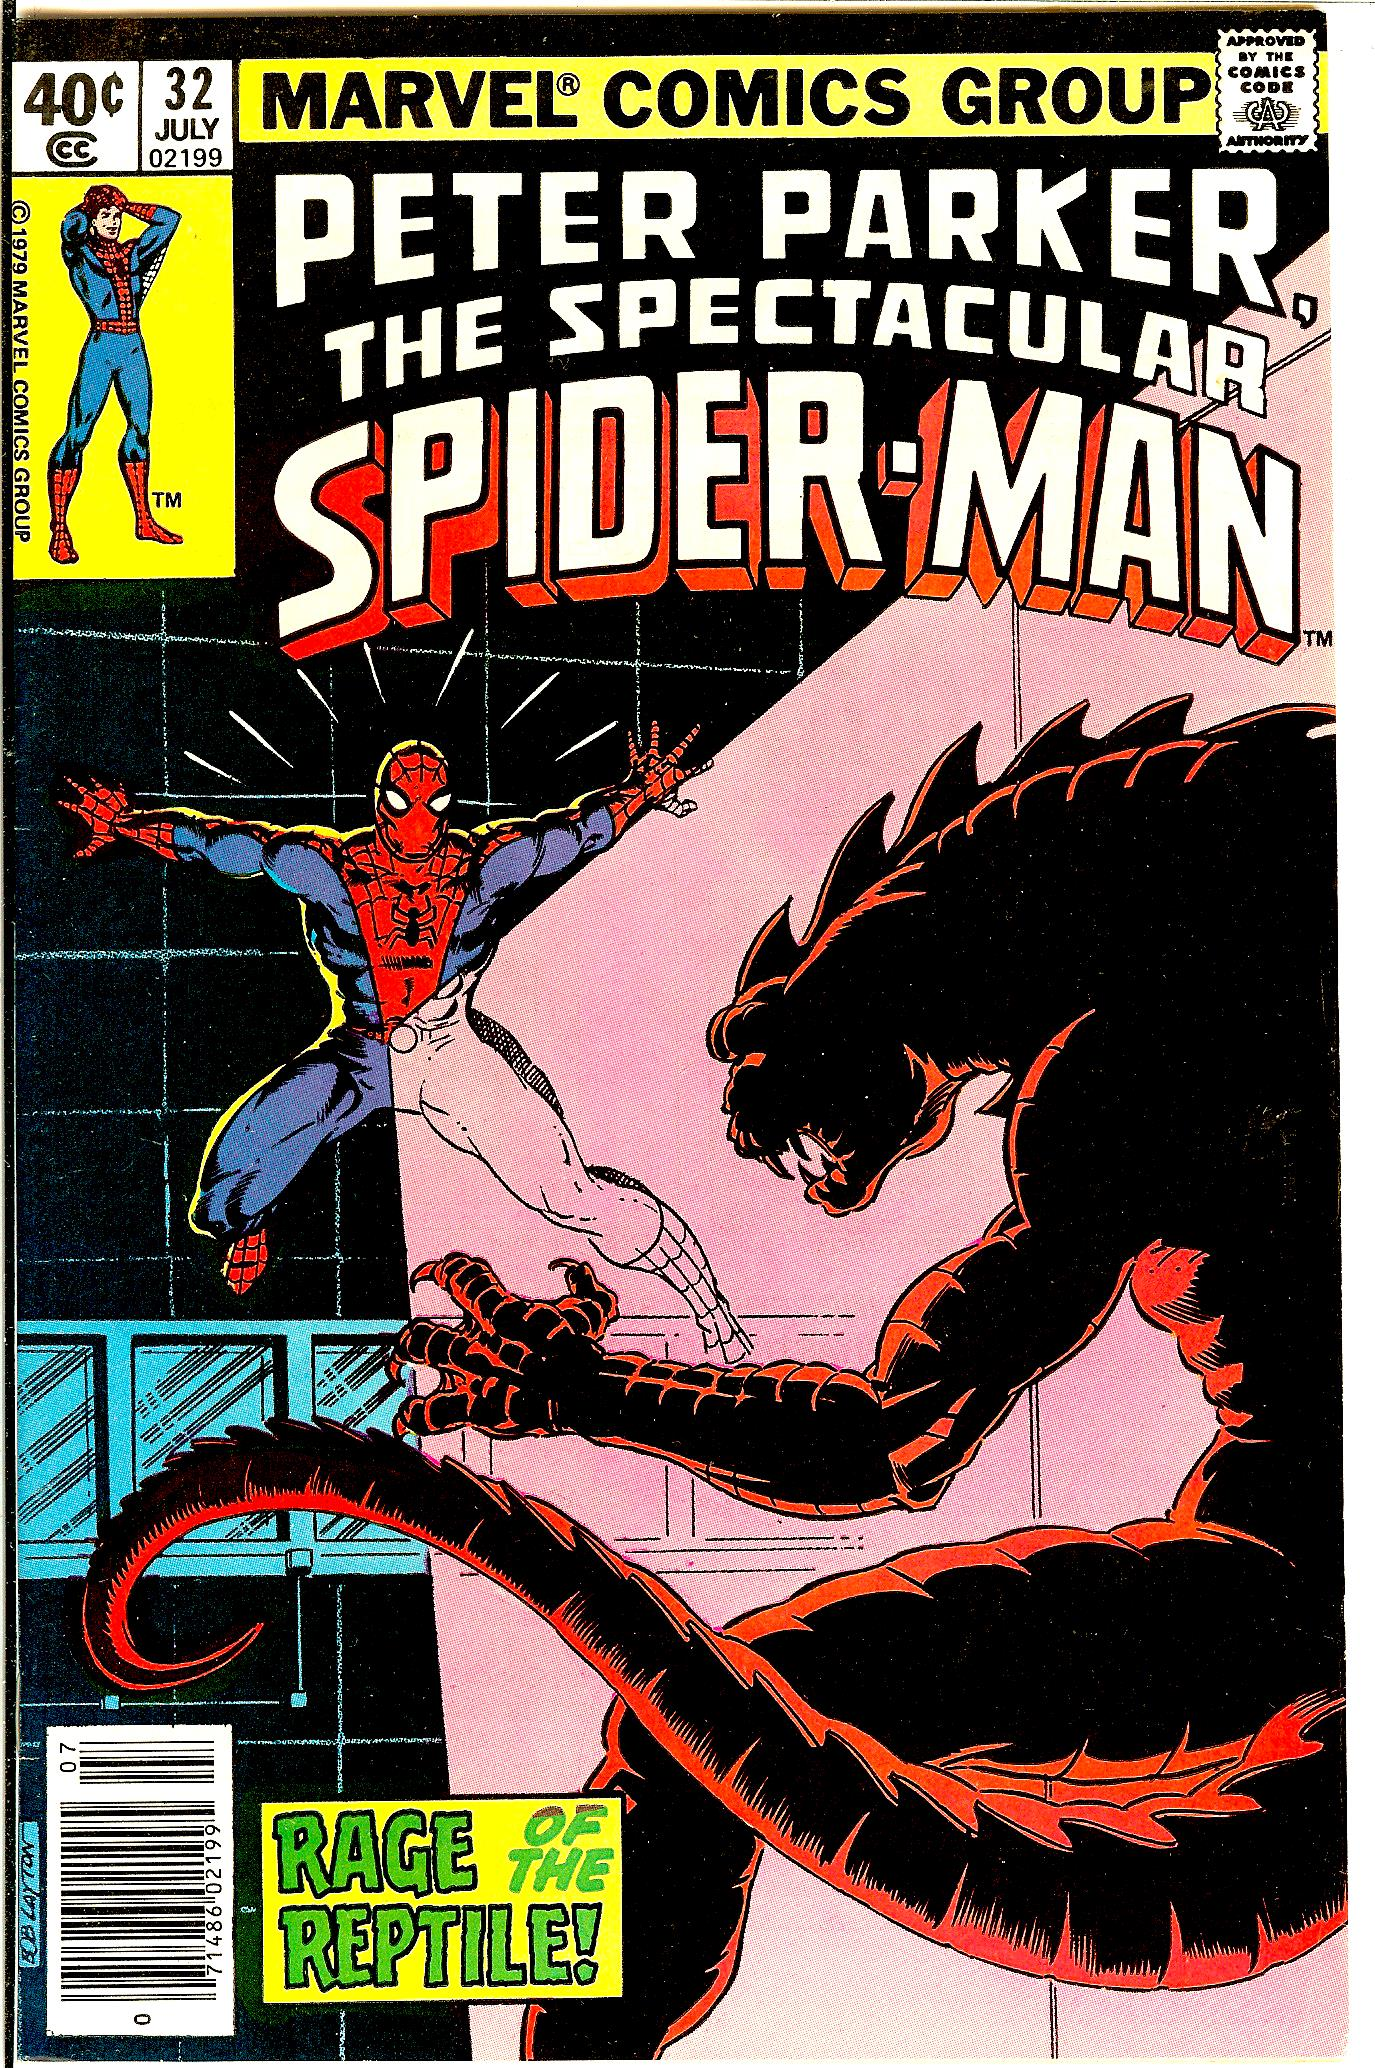 Man 32 Indicted In Alleged Misconduct With 14 Year Old: Spectacular Spider-Man #32